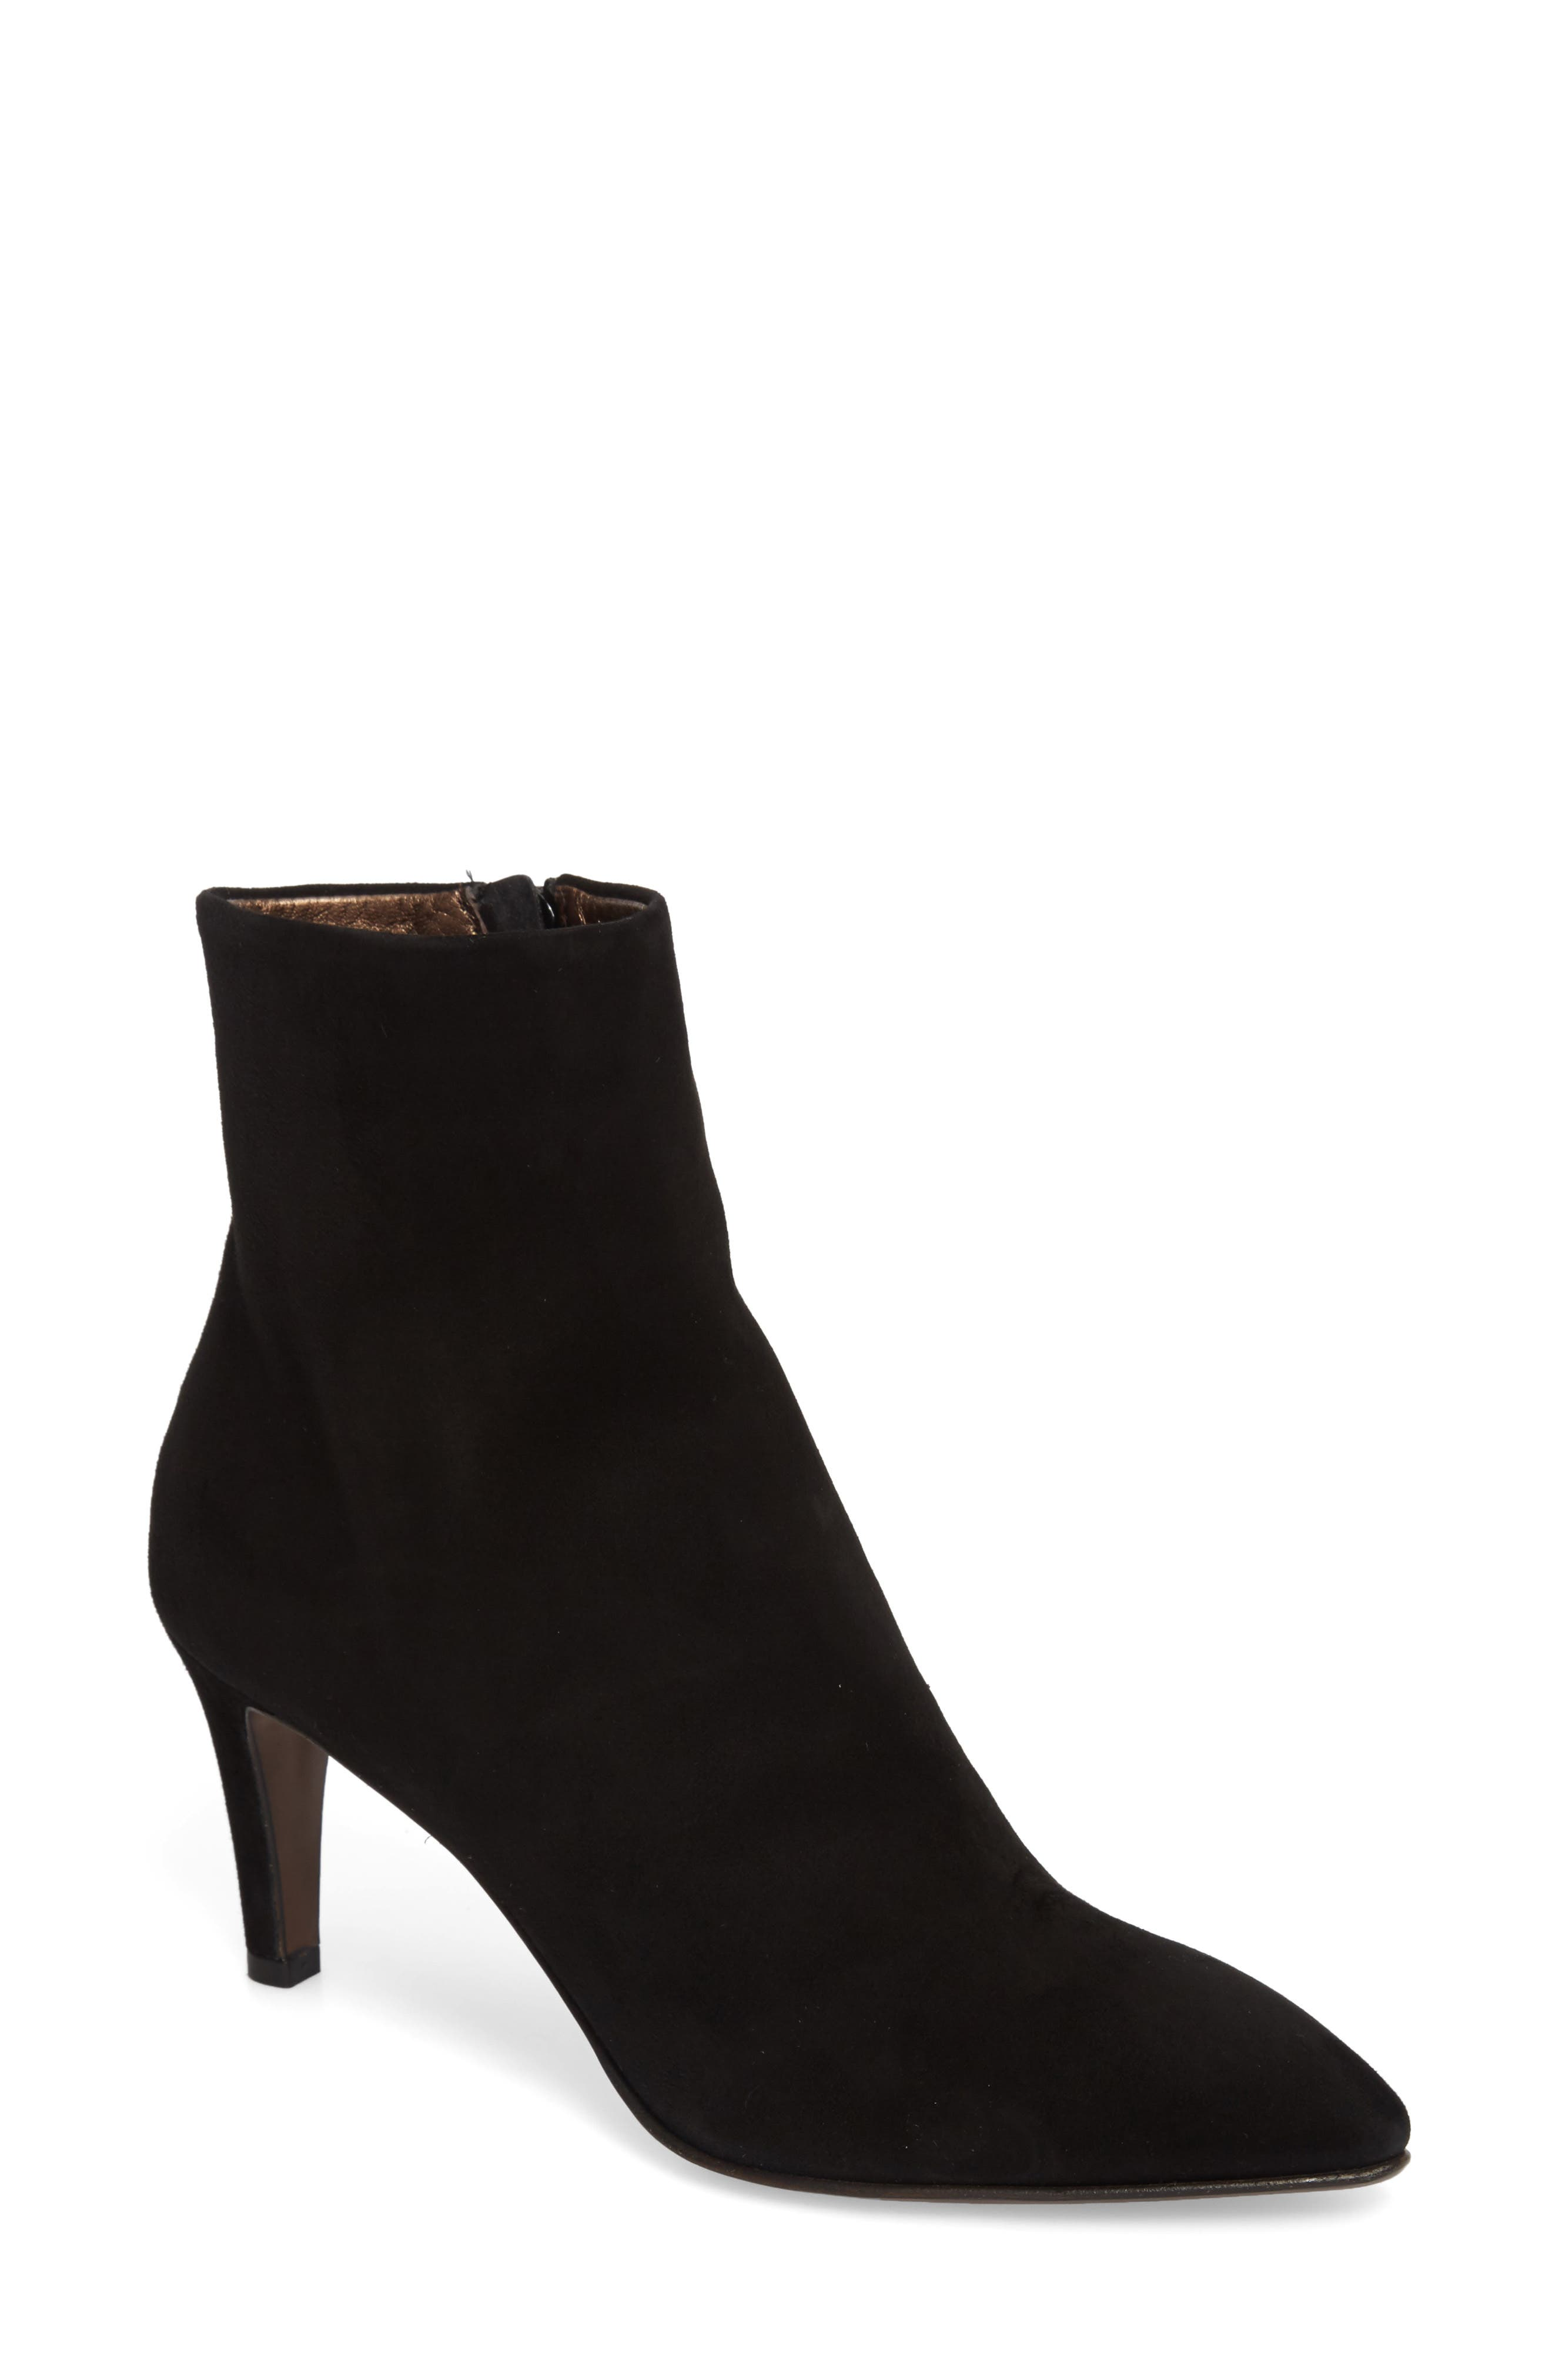 Main Image - AGL Pointy Toe Bootie (Women)